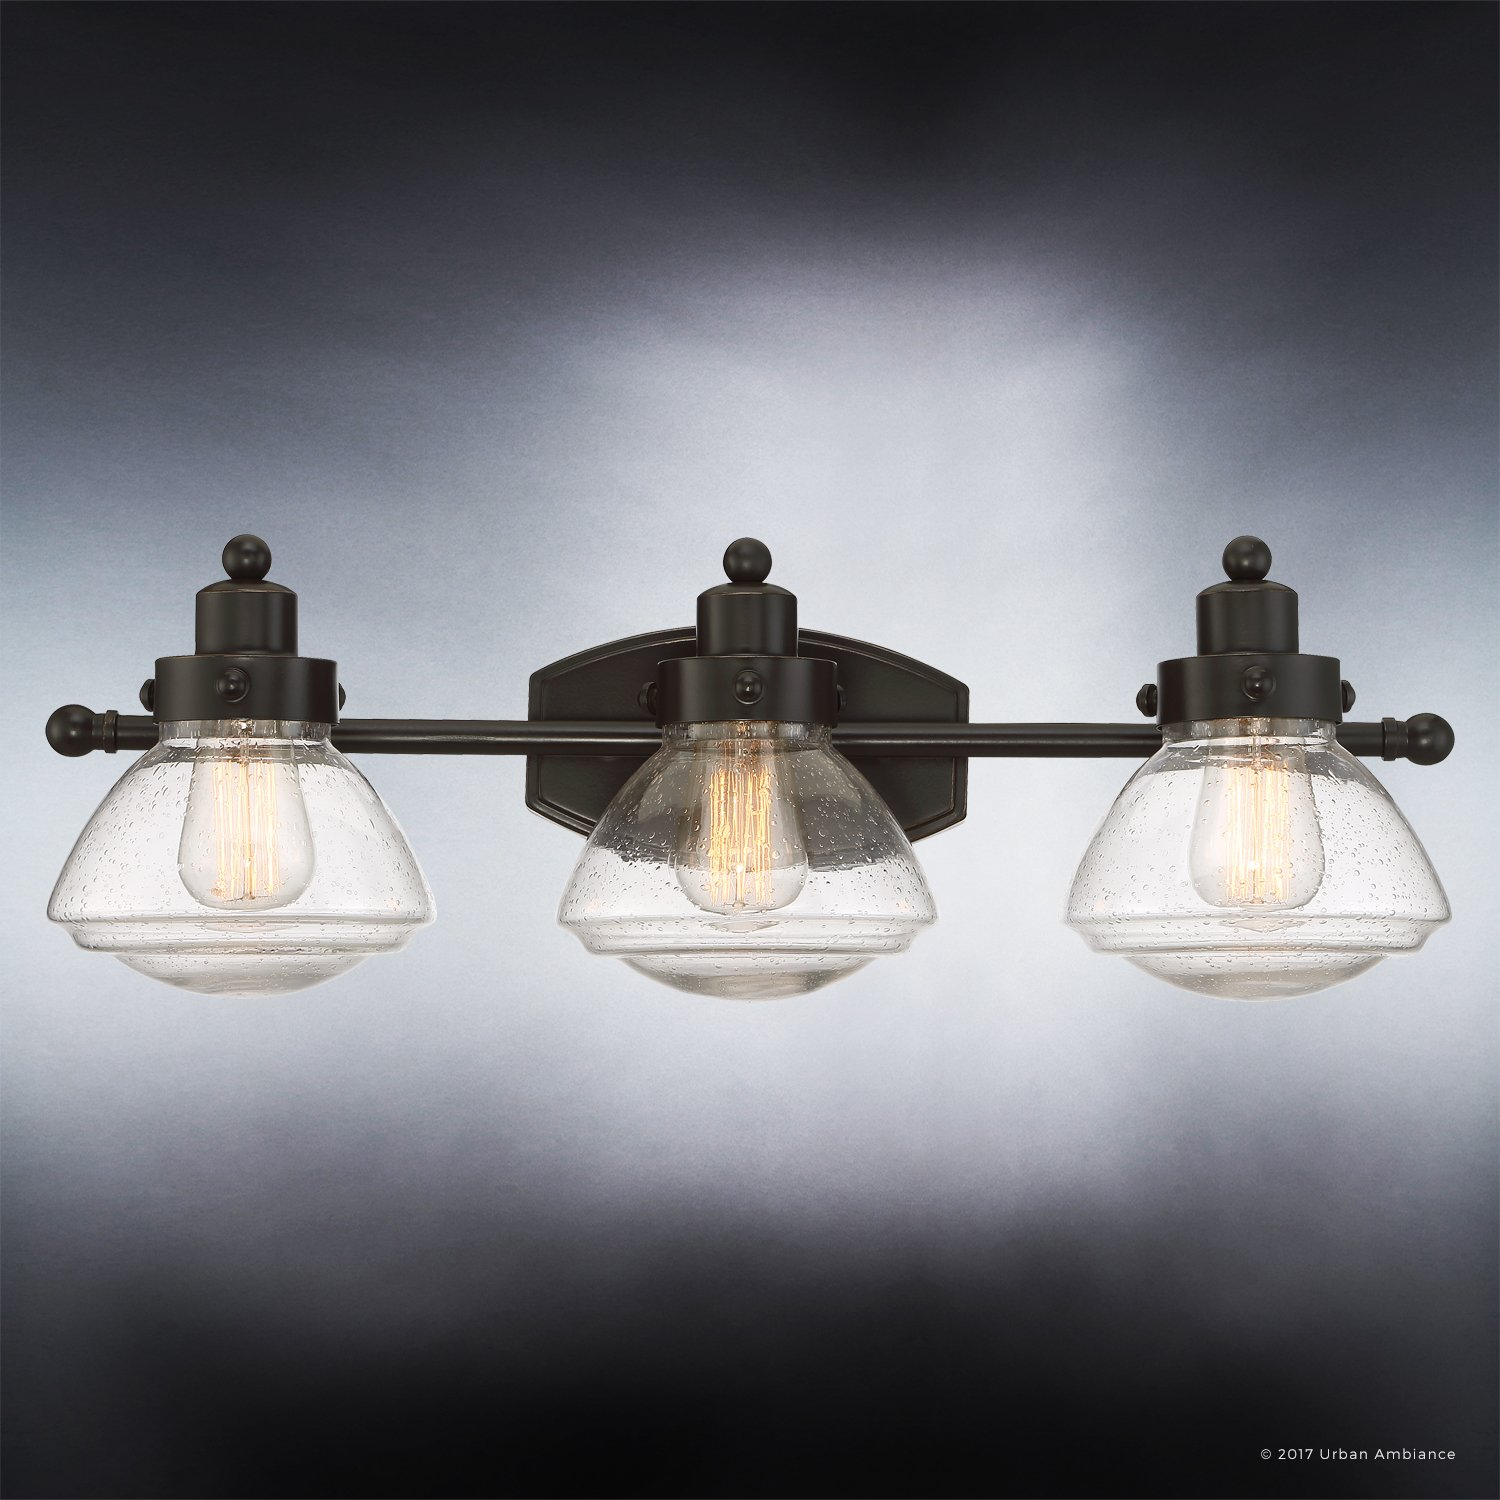 Luxury Transitional Bathroom Vanity Light, Medium Size: 8''H x 25''W, with Rustic Style Elements, Oil Rubbed Parisian Bronze Finish and Seeded Schoolhouse Glass, UQL2652 by Urban Ambiance by Urban Ambiance (Image #4)